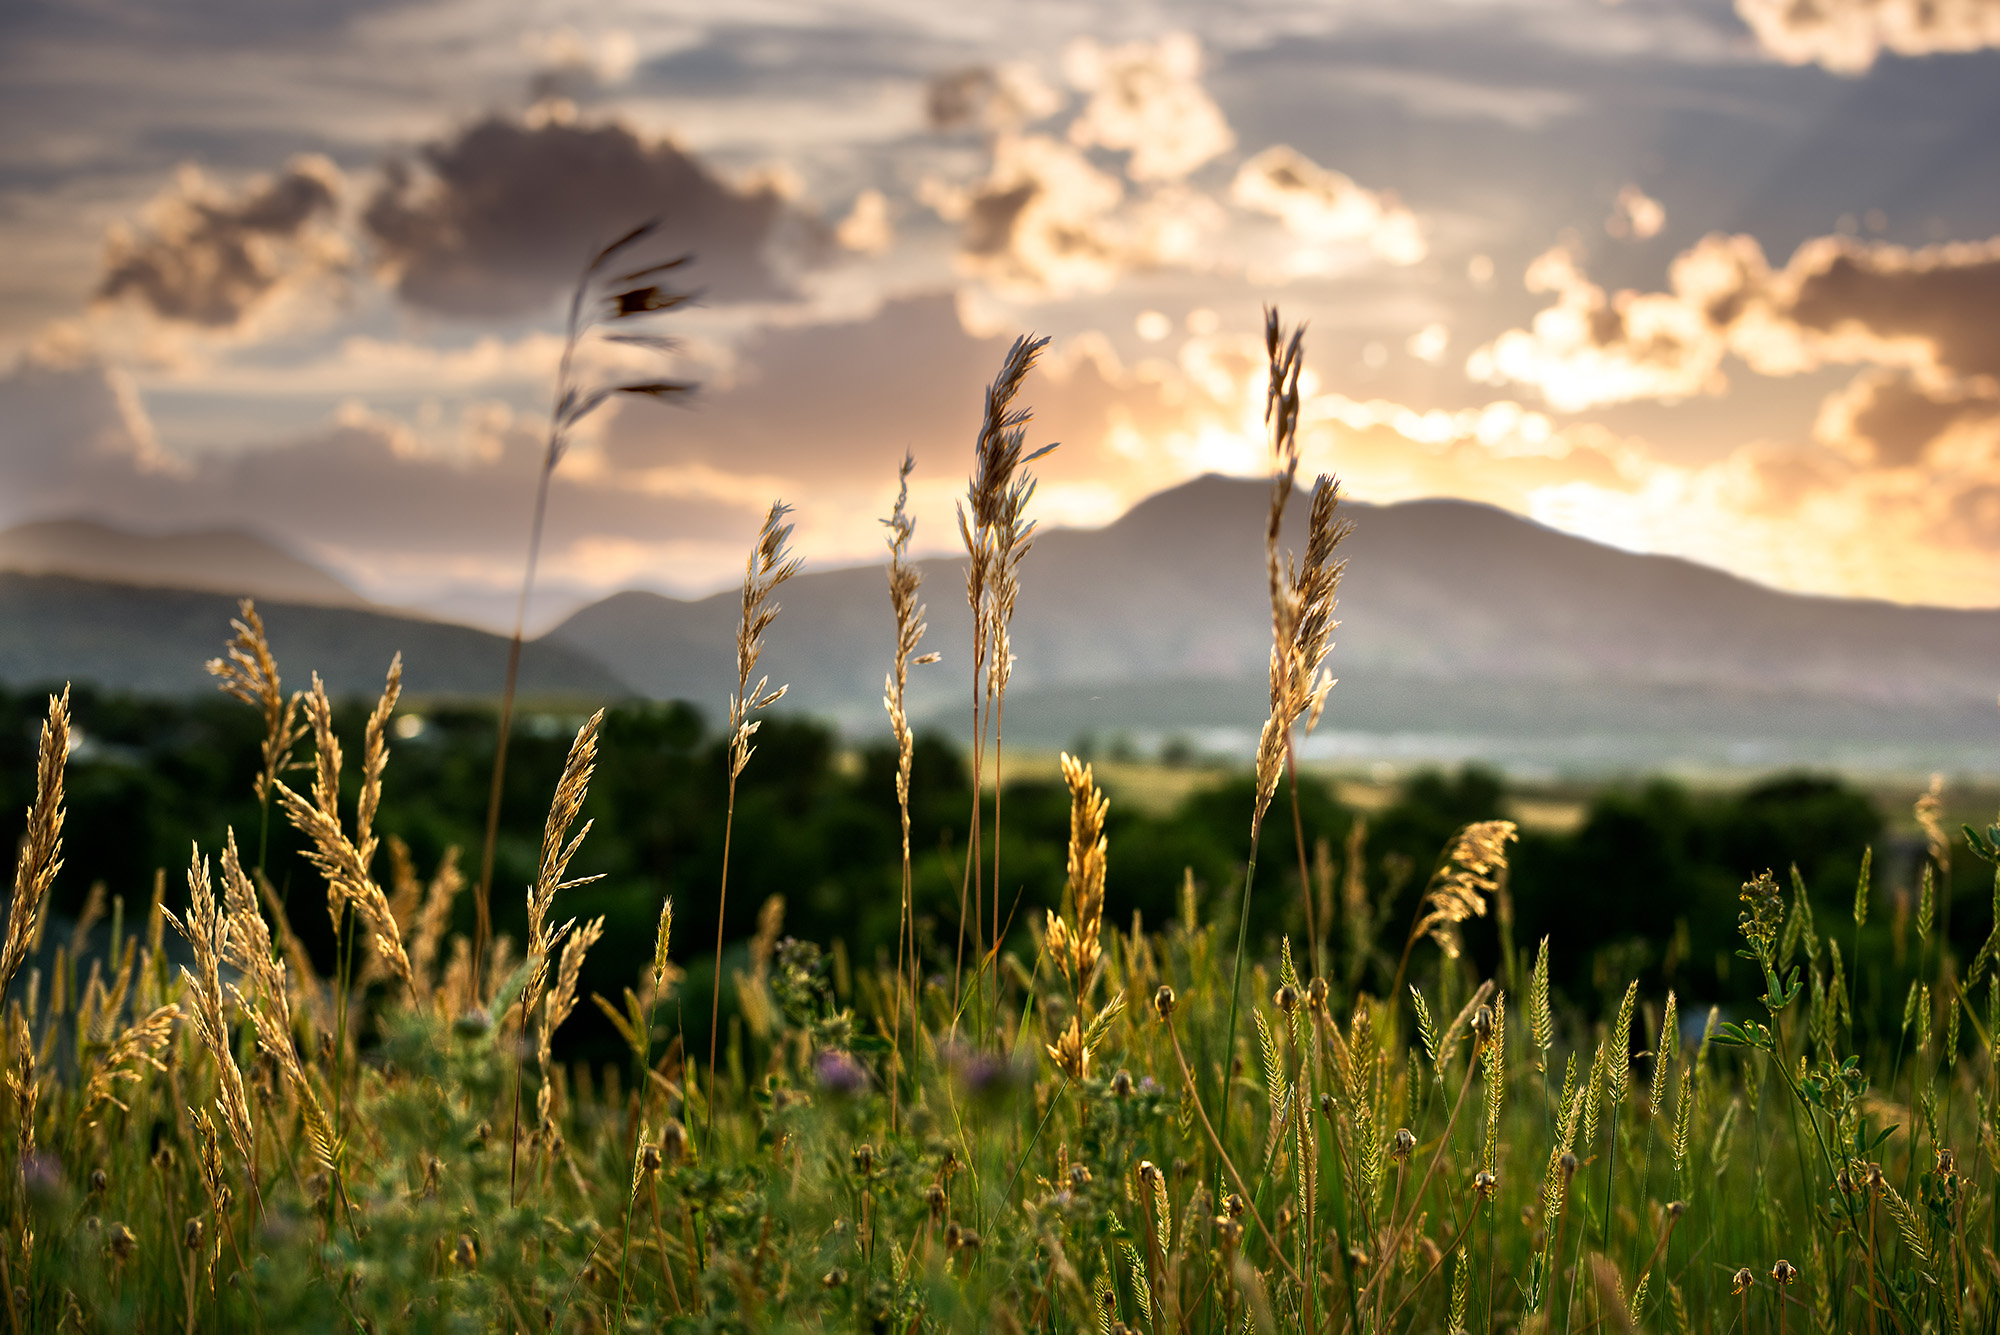 Colorado Wild Grasses at Sunset